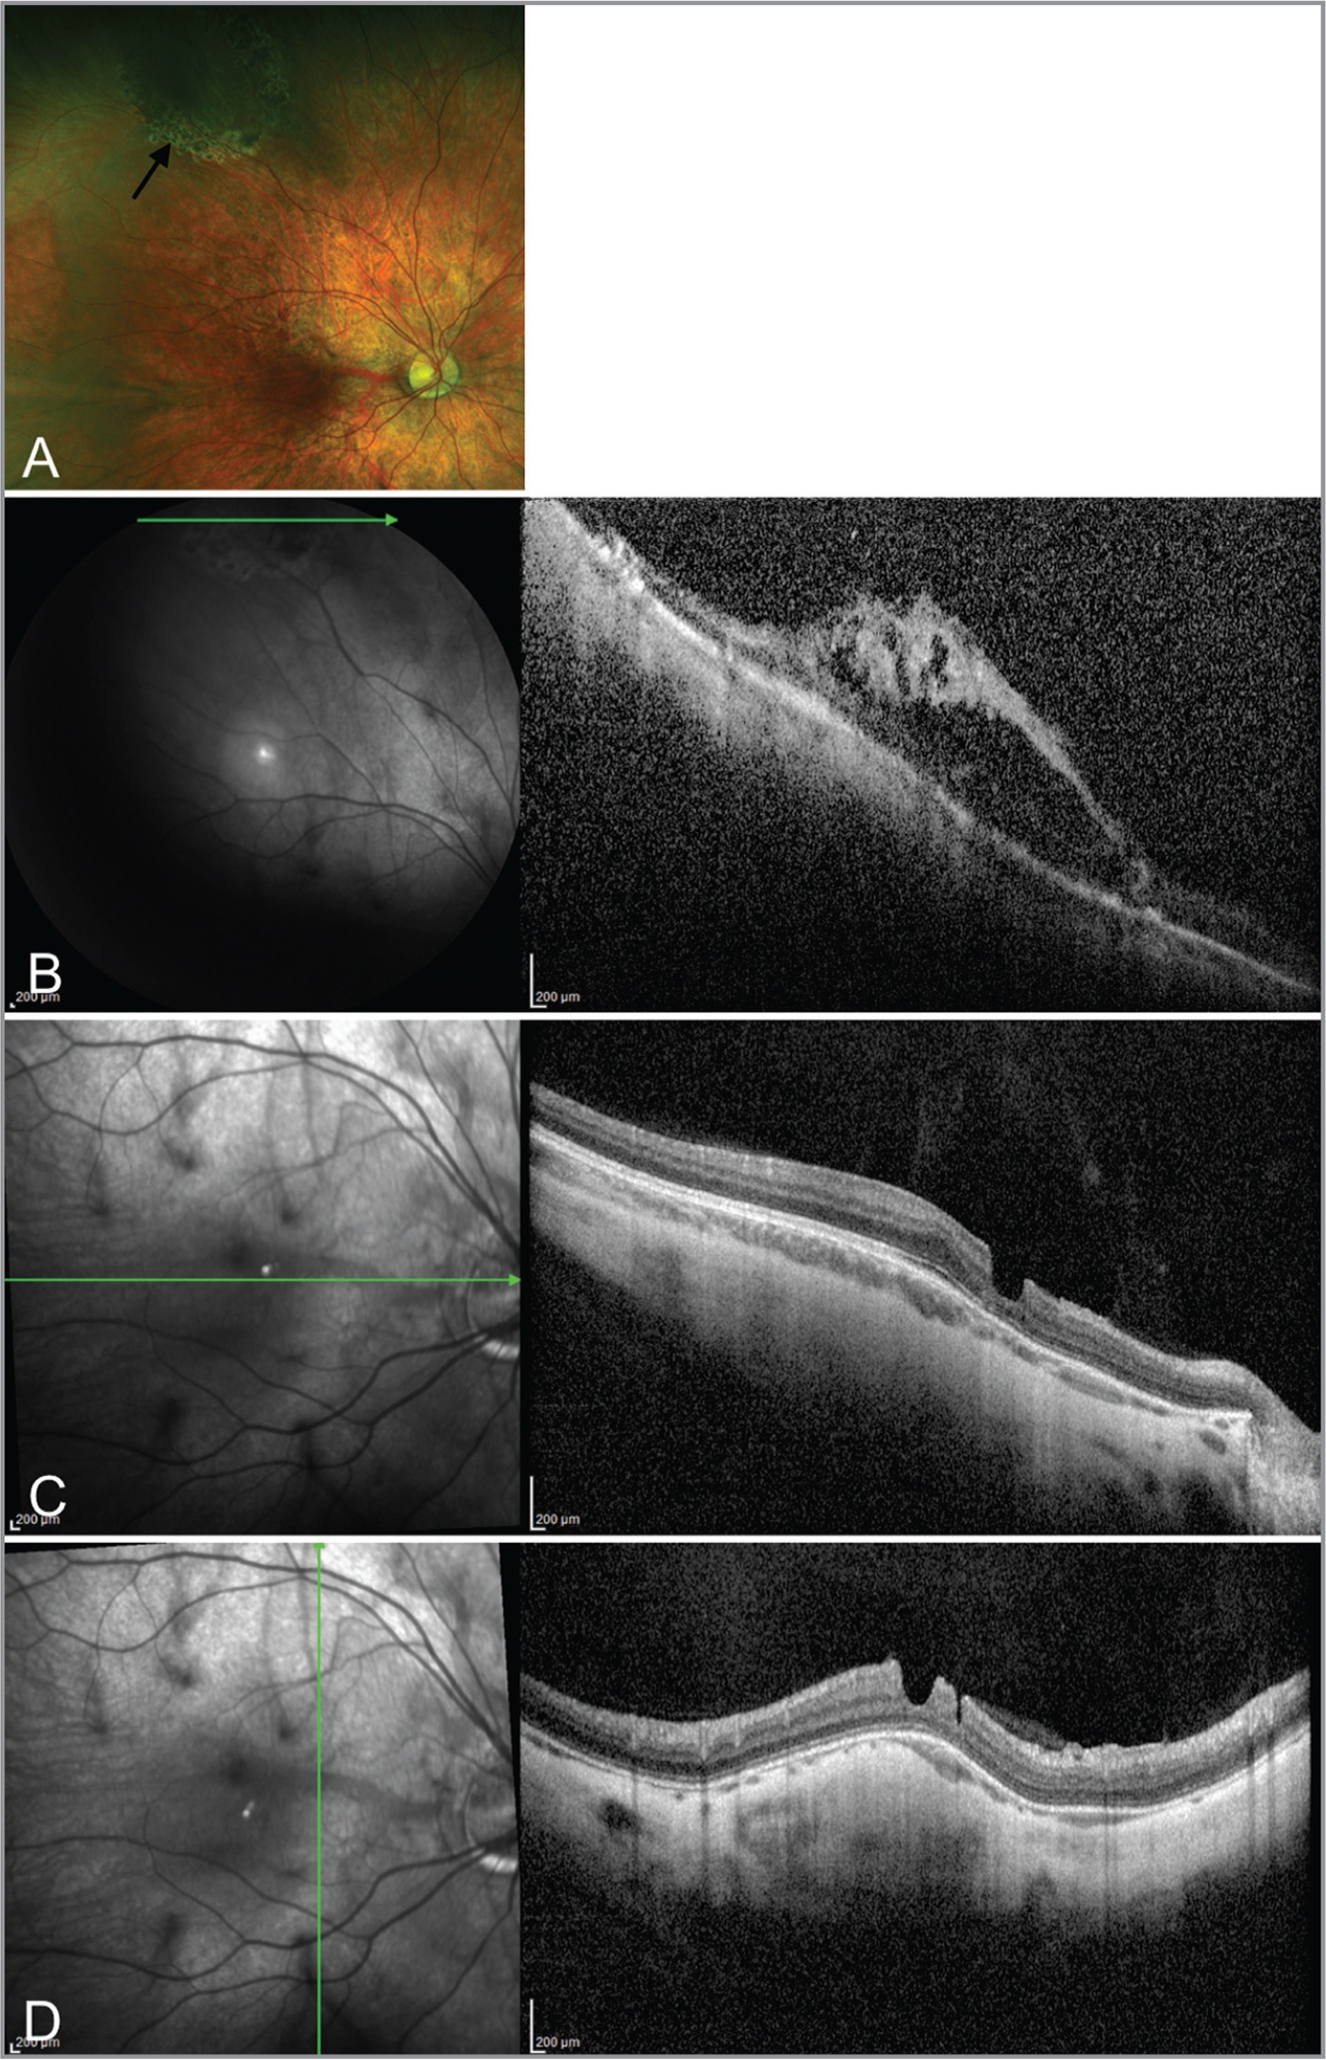 Fundus photograph and spectral-domain optical coherence tomography (SD-OCT) of the right eye after laser retinopexy in Case 2. (A) Fundus photograph demonstrating superotemporal laser retinopexy scars surrounding area of traction from persistent fetal vasculature stalk. SD-OCT demonstrating (B) elevation of retina with irregular anatomy within area surrounded by laser retinopexy and (C and D) irregular anatomy and contour of macula.